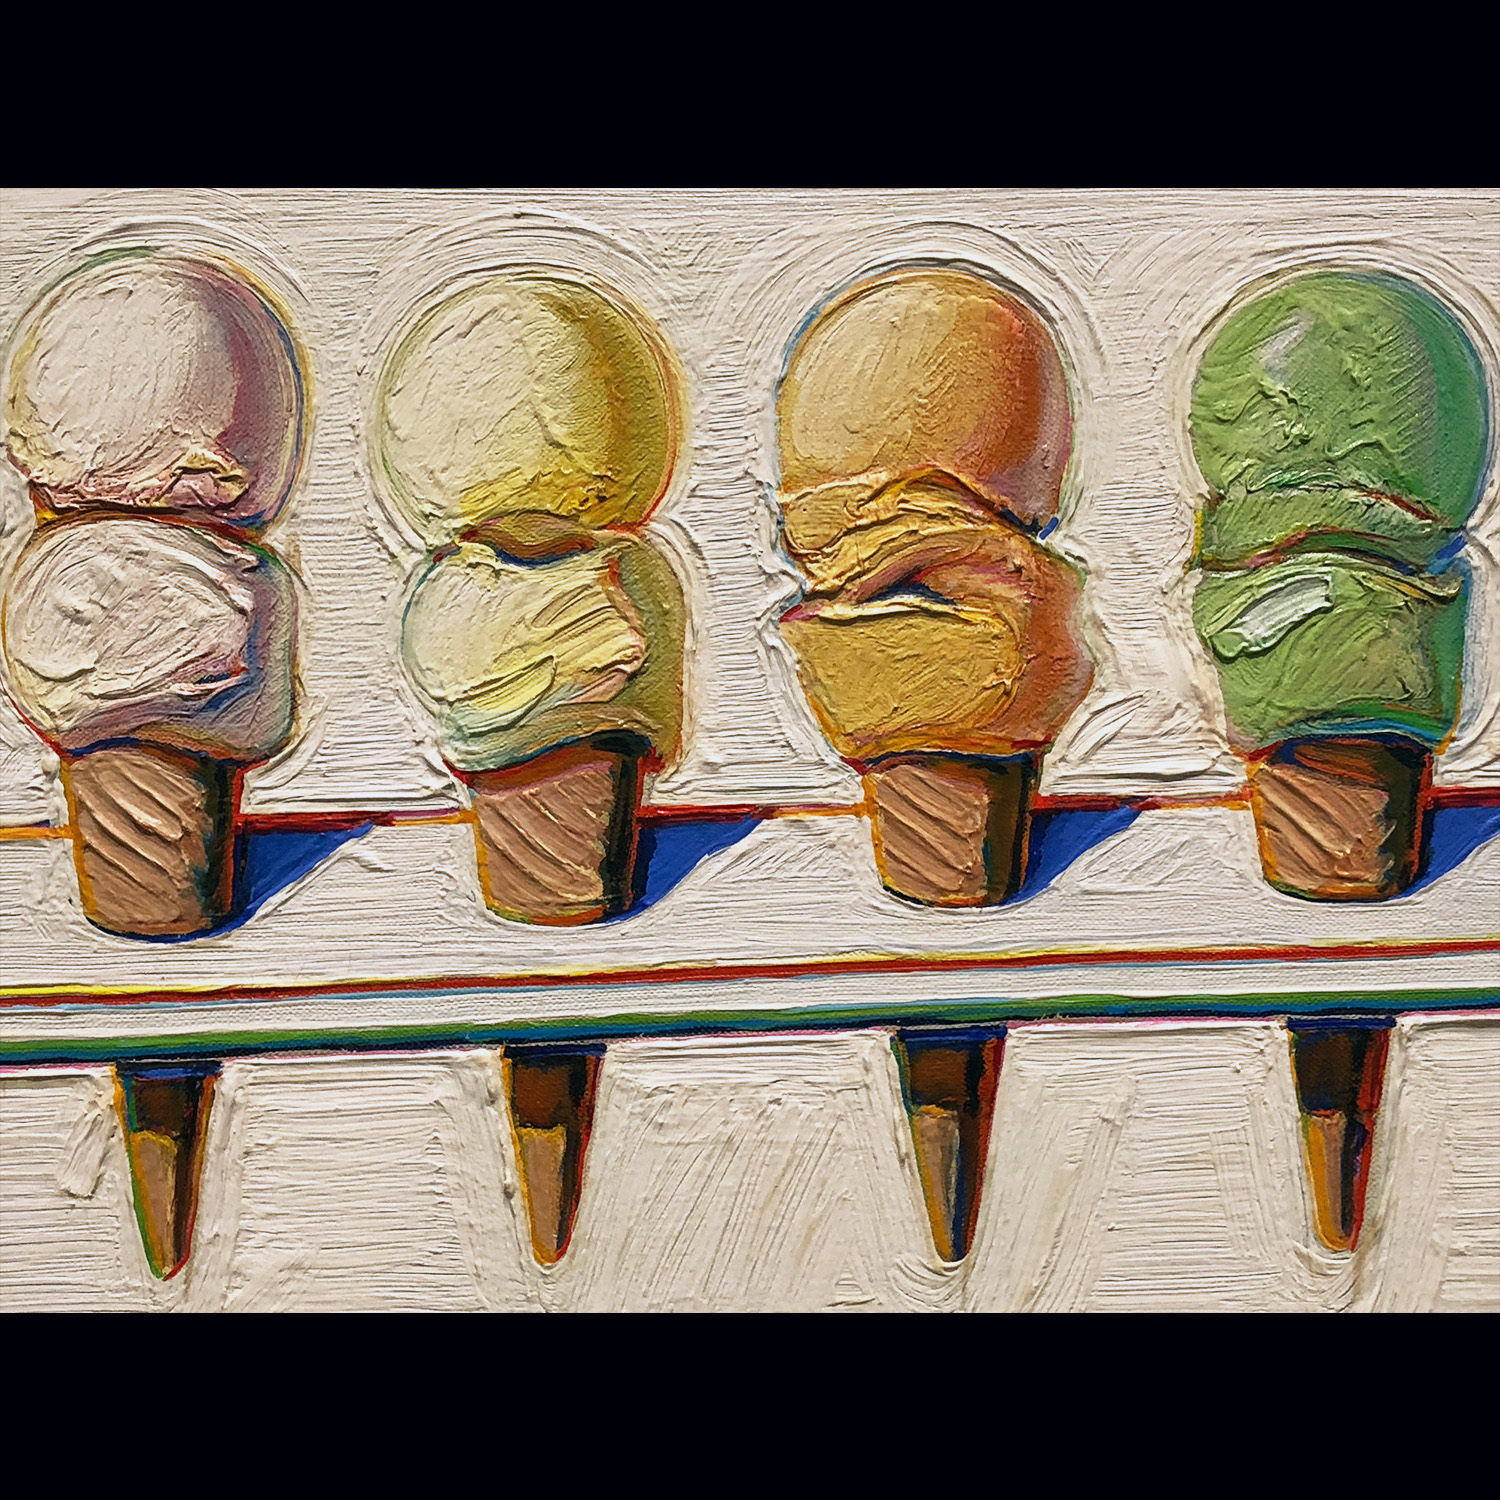 Four Ice Cream Cones - Wayne Thiebaud